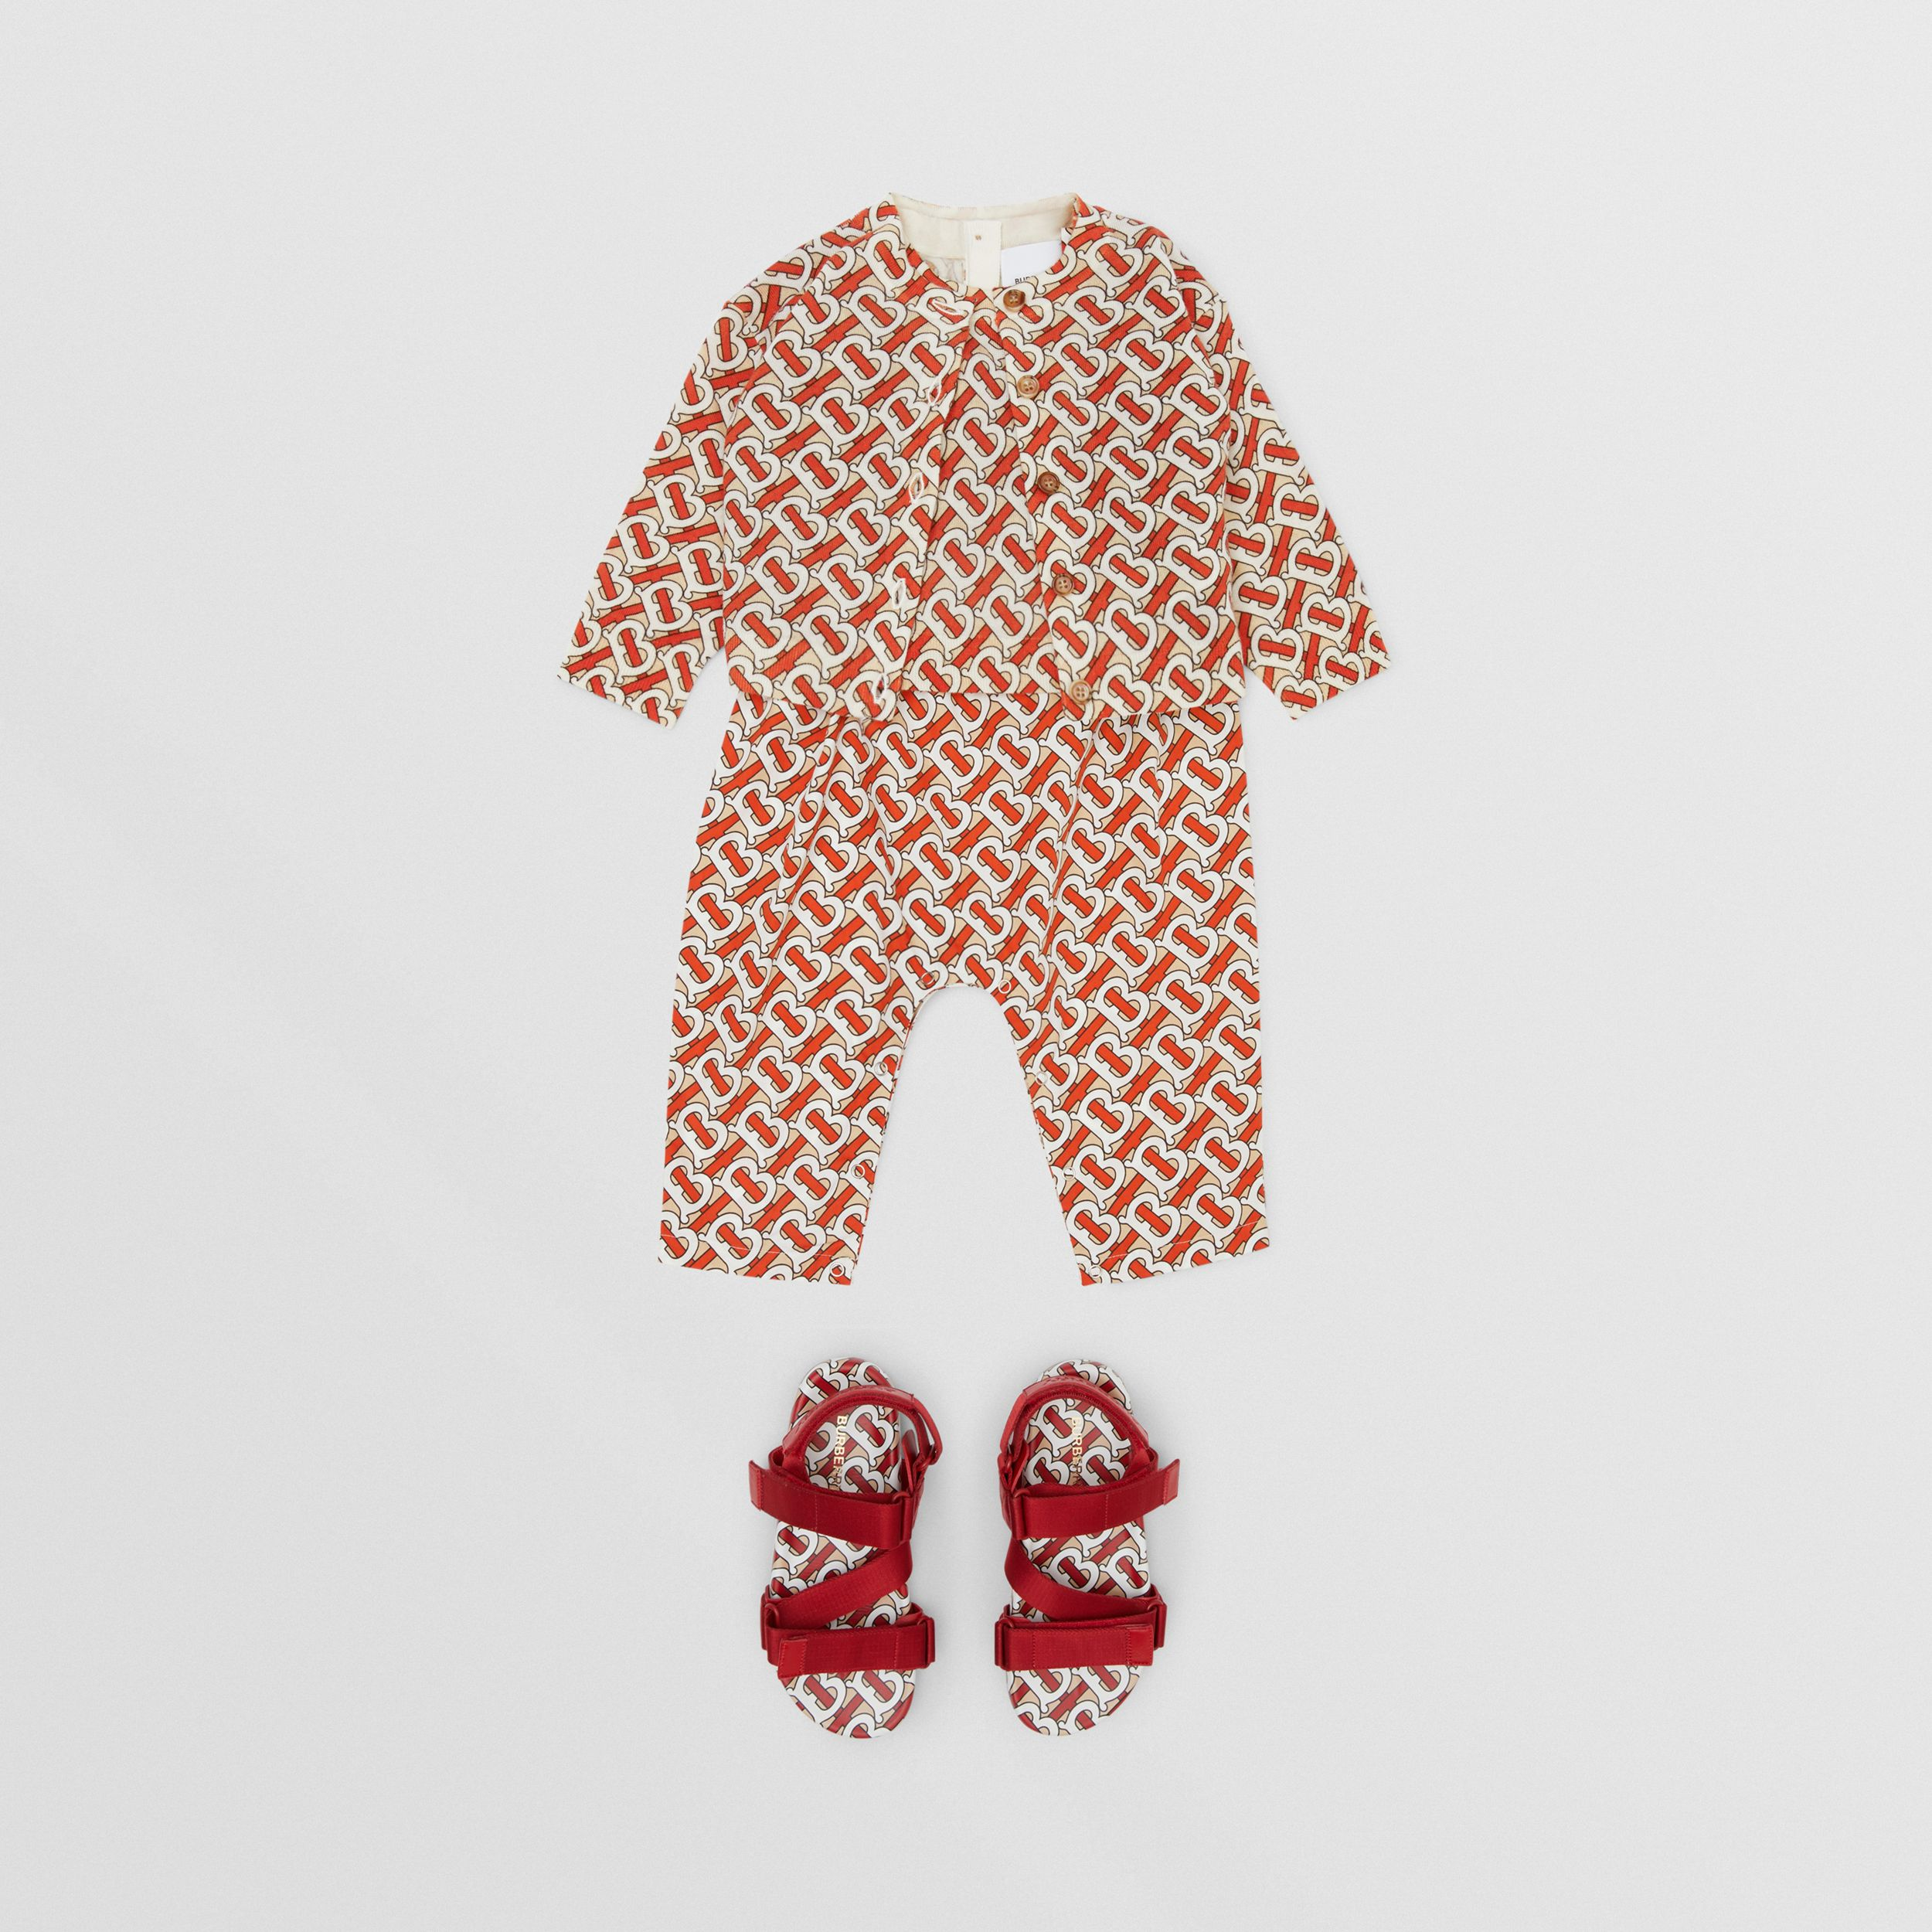 Monogram Print Merino Wool Two-piece Set in Vermilion - Children | Burberry - 4